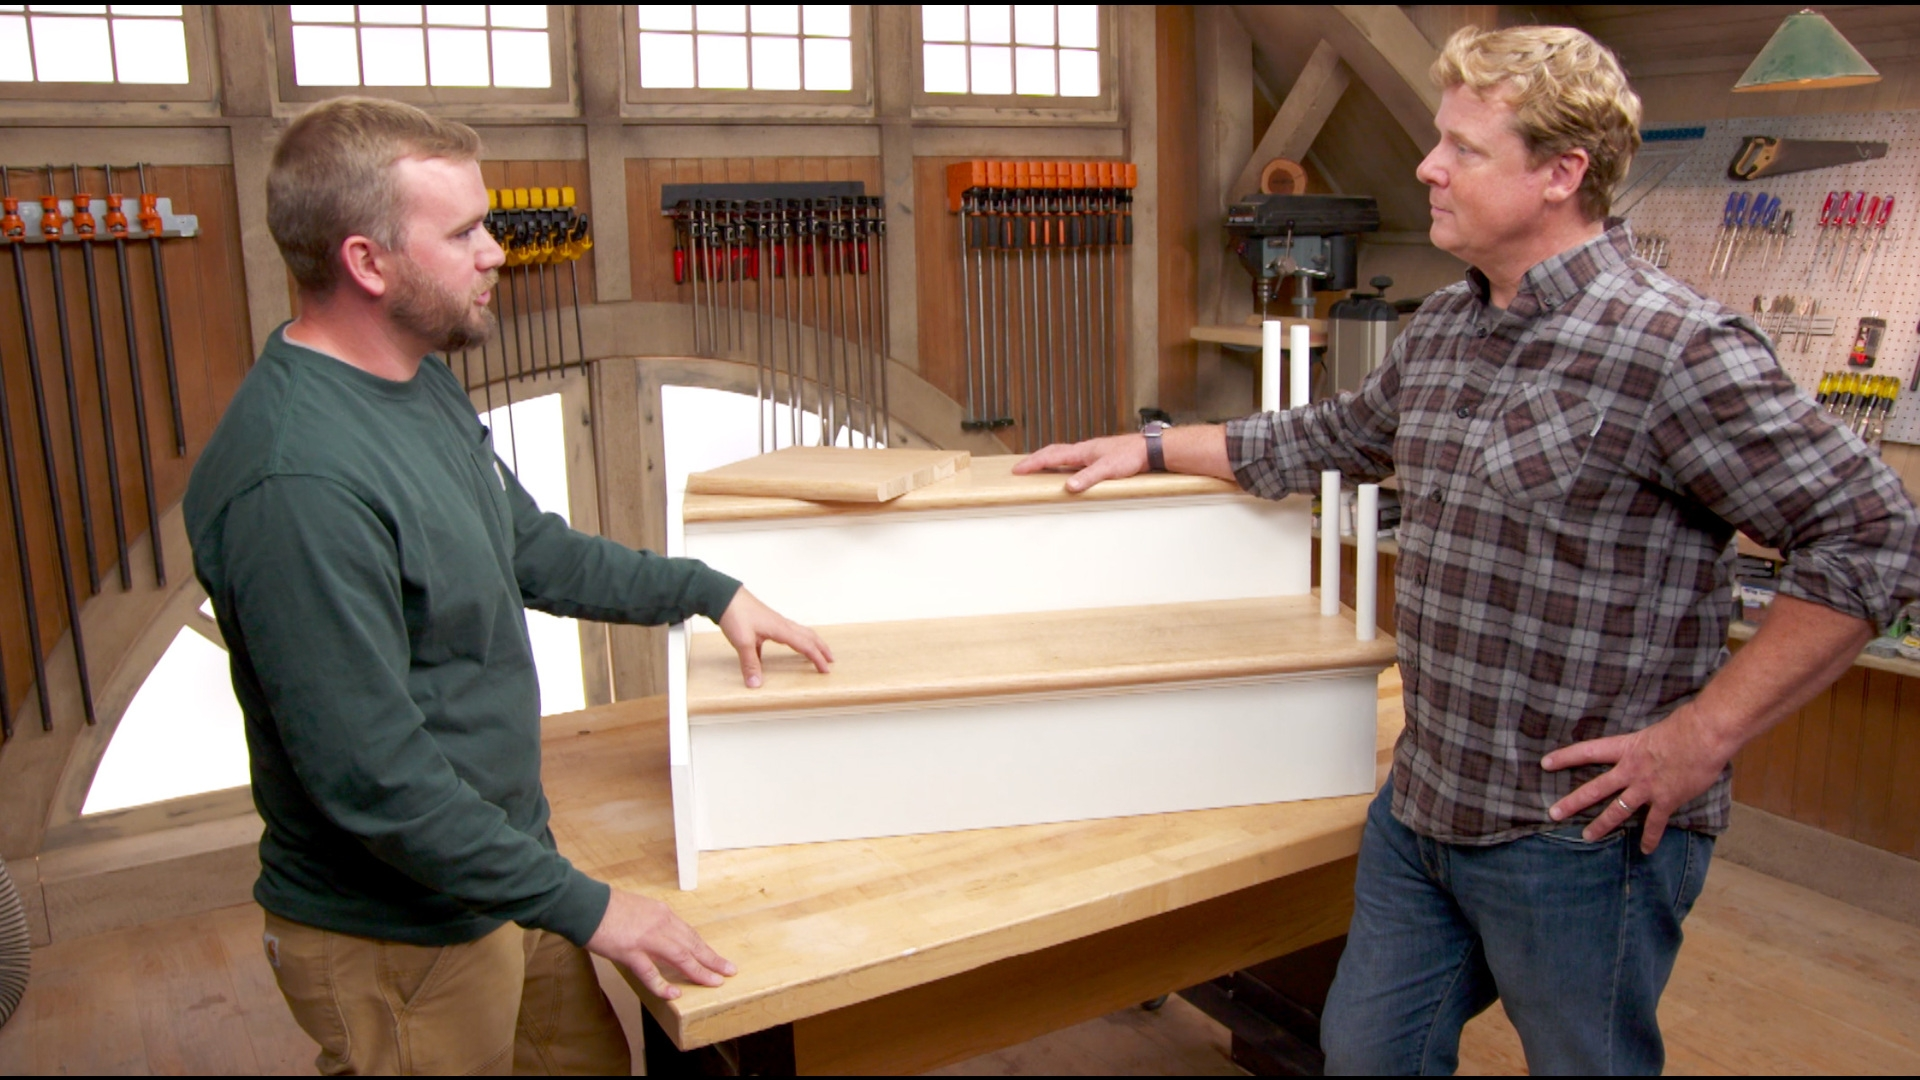 How To Refinish Worn Out Stair Treads This Old House | Live Edge Stair Treads | Stained | Build In Bench | Douglas Fir | Dark Risers | Barnwood